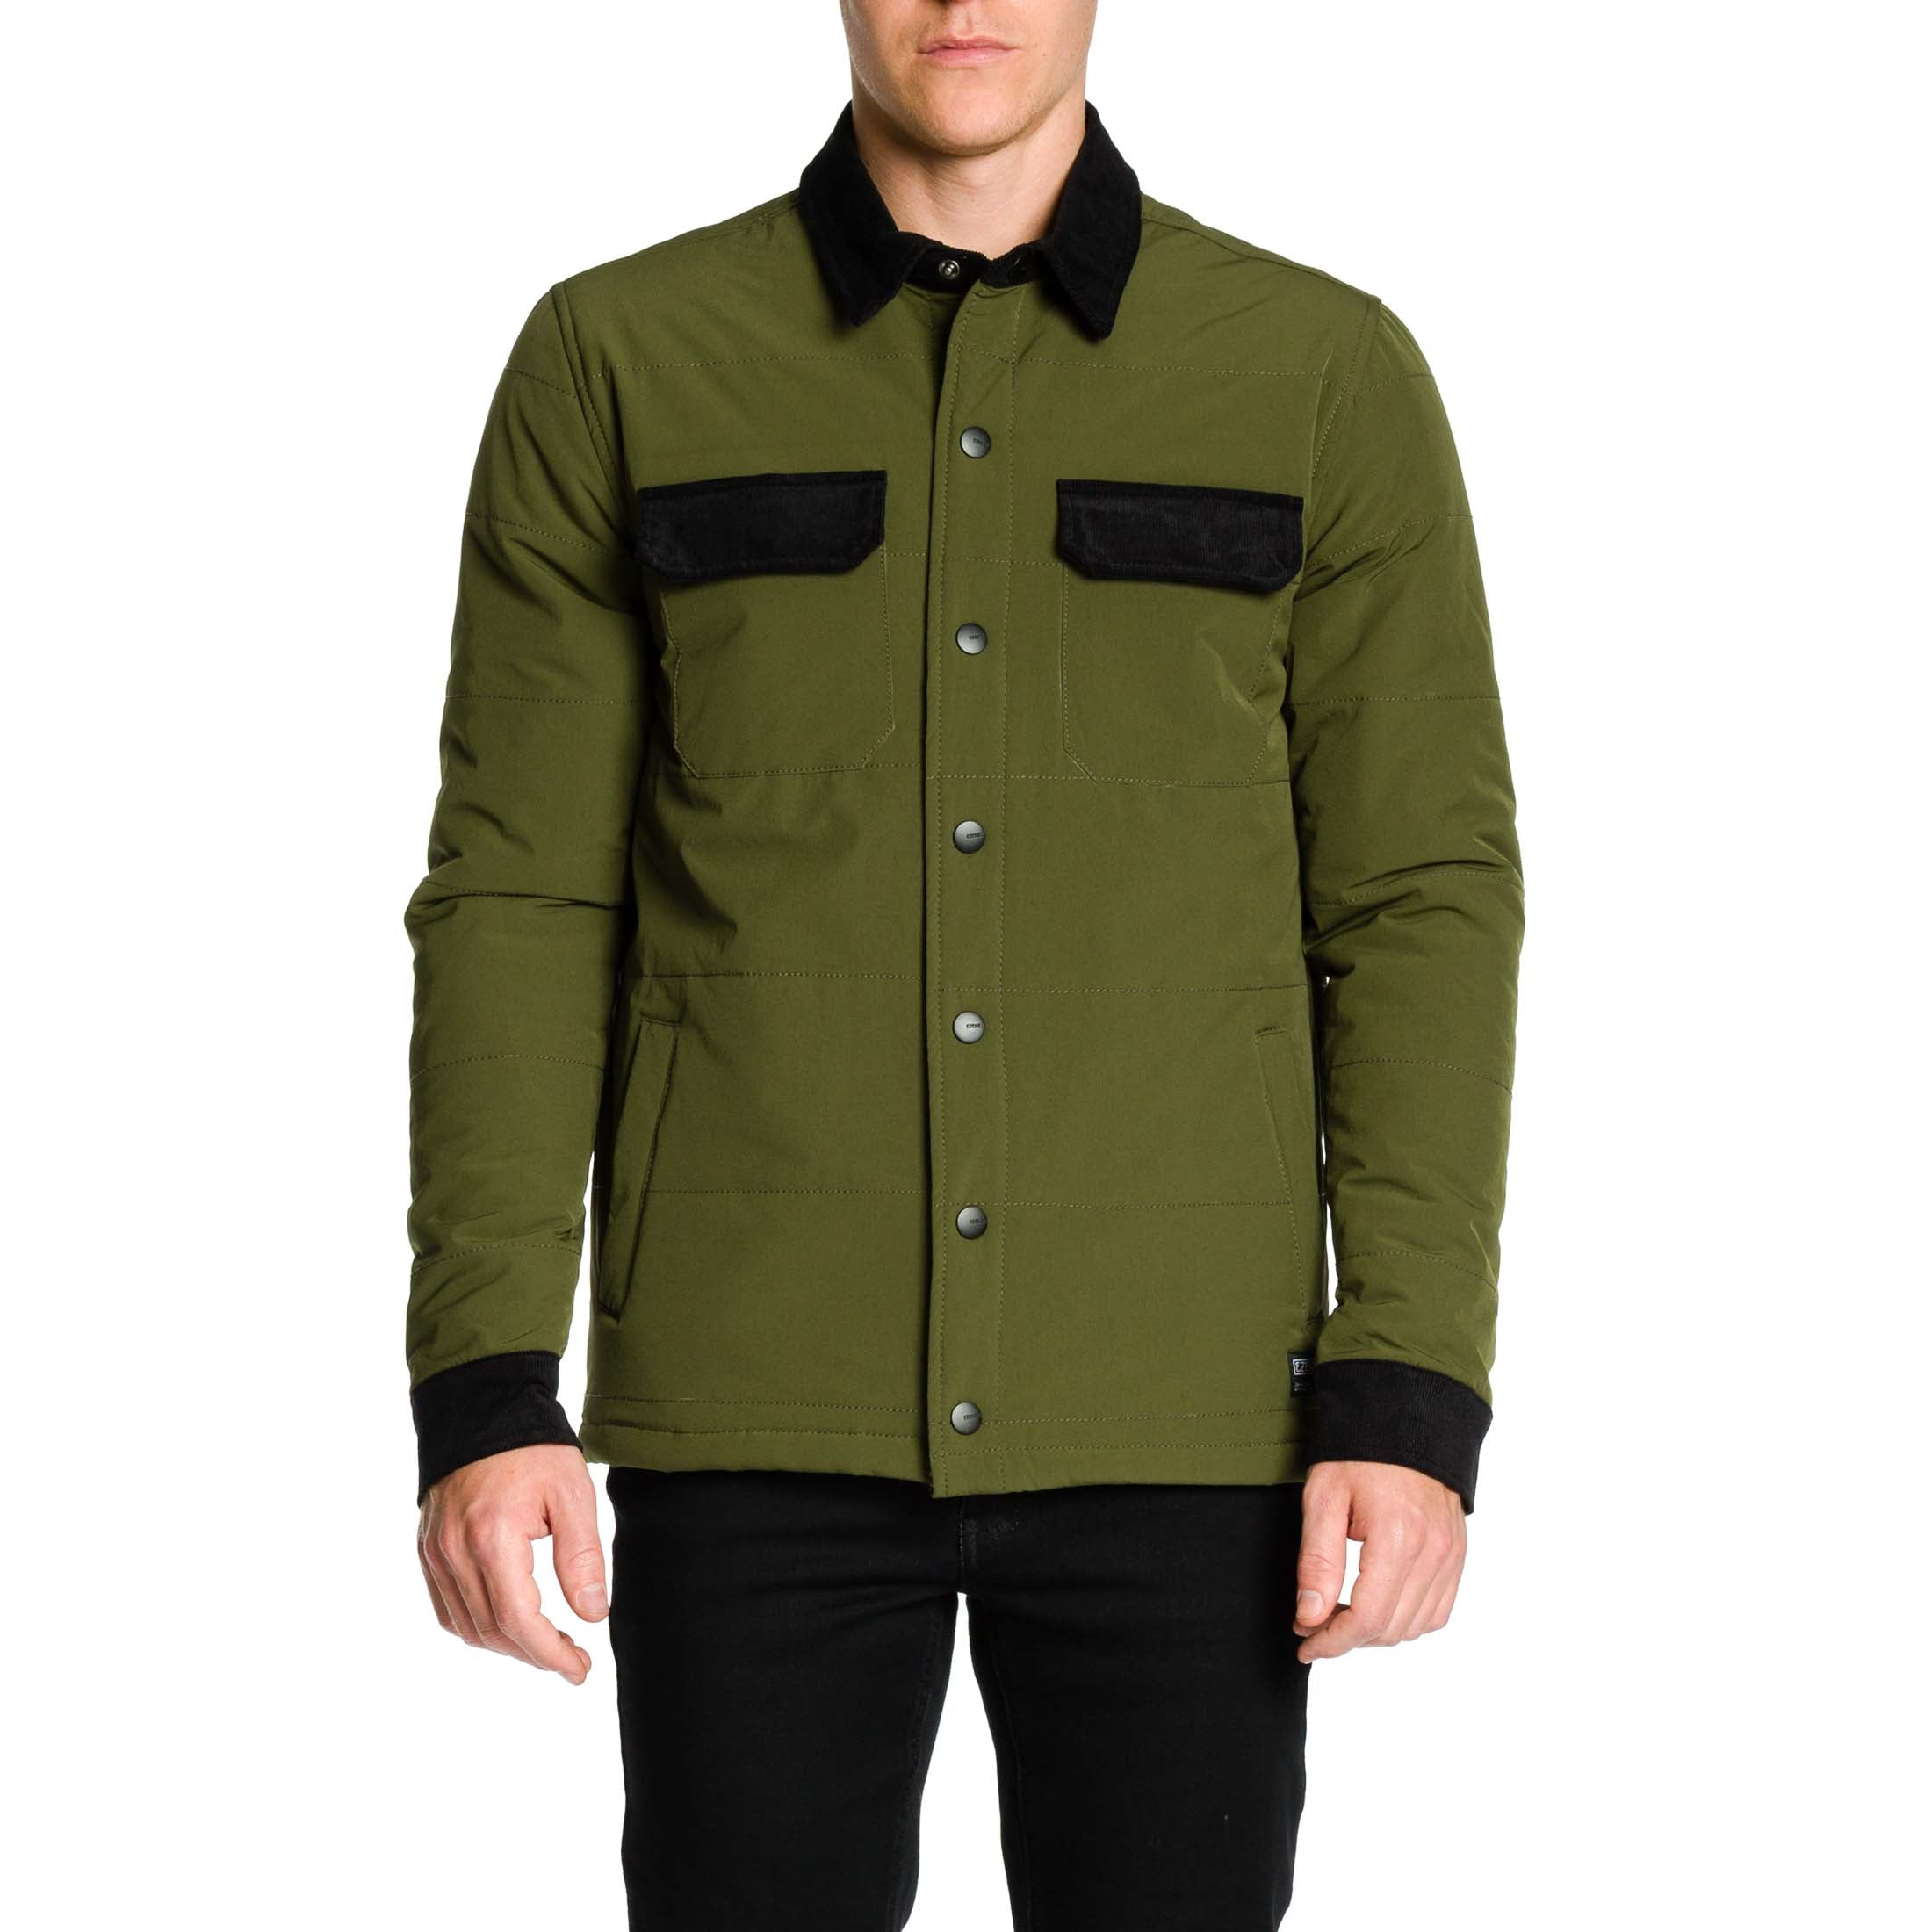 Ironwood Jacket - Military Green